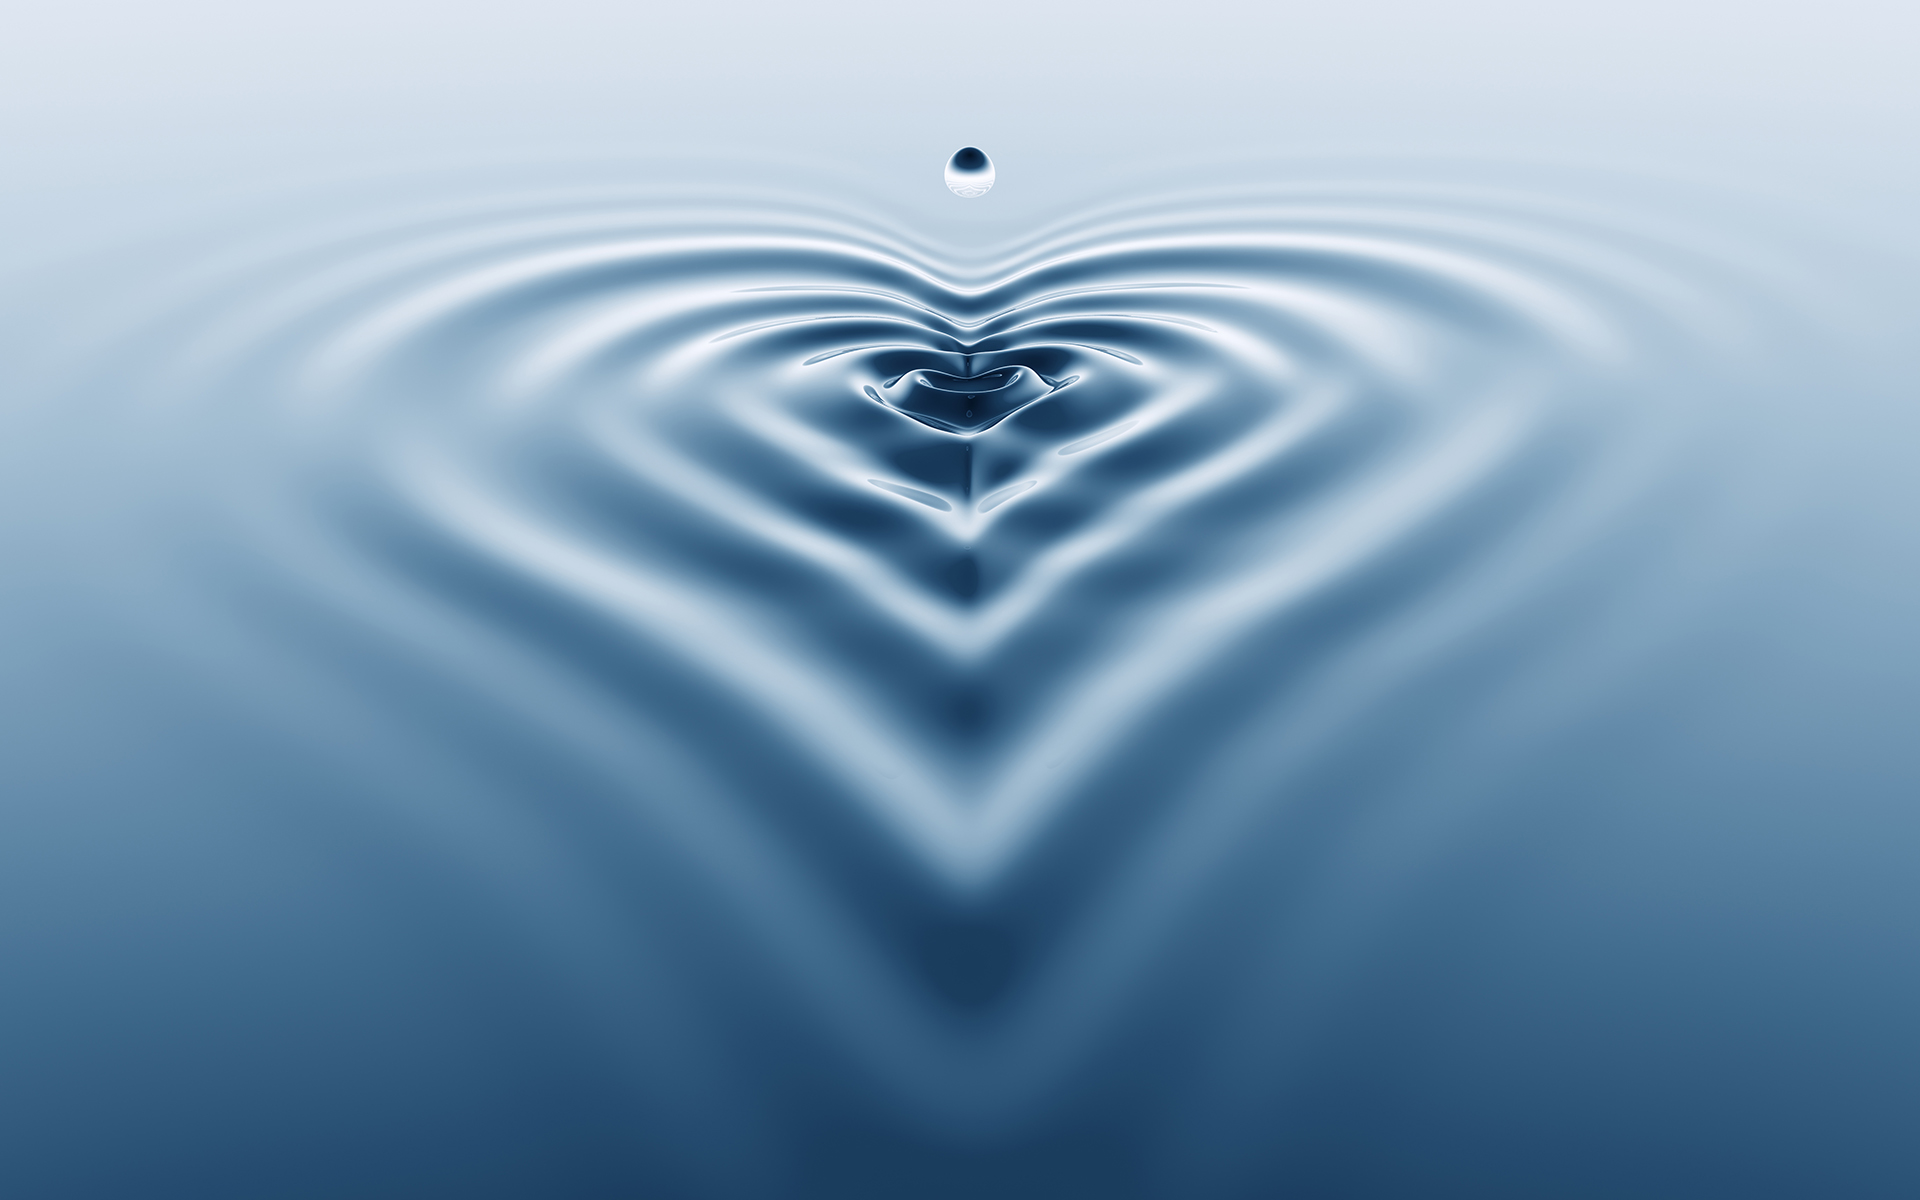 Sharon Salzberg Reveals Why Our Interconnectedness Is Our Greatest Strength - Water splash with ripple shaped as a heart